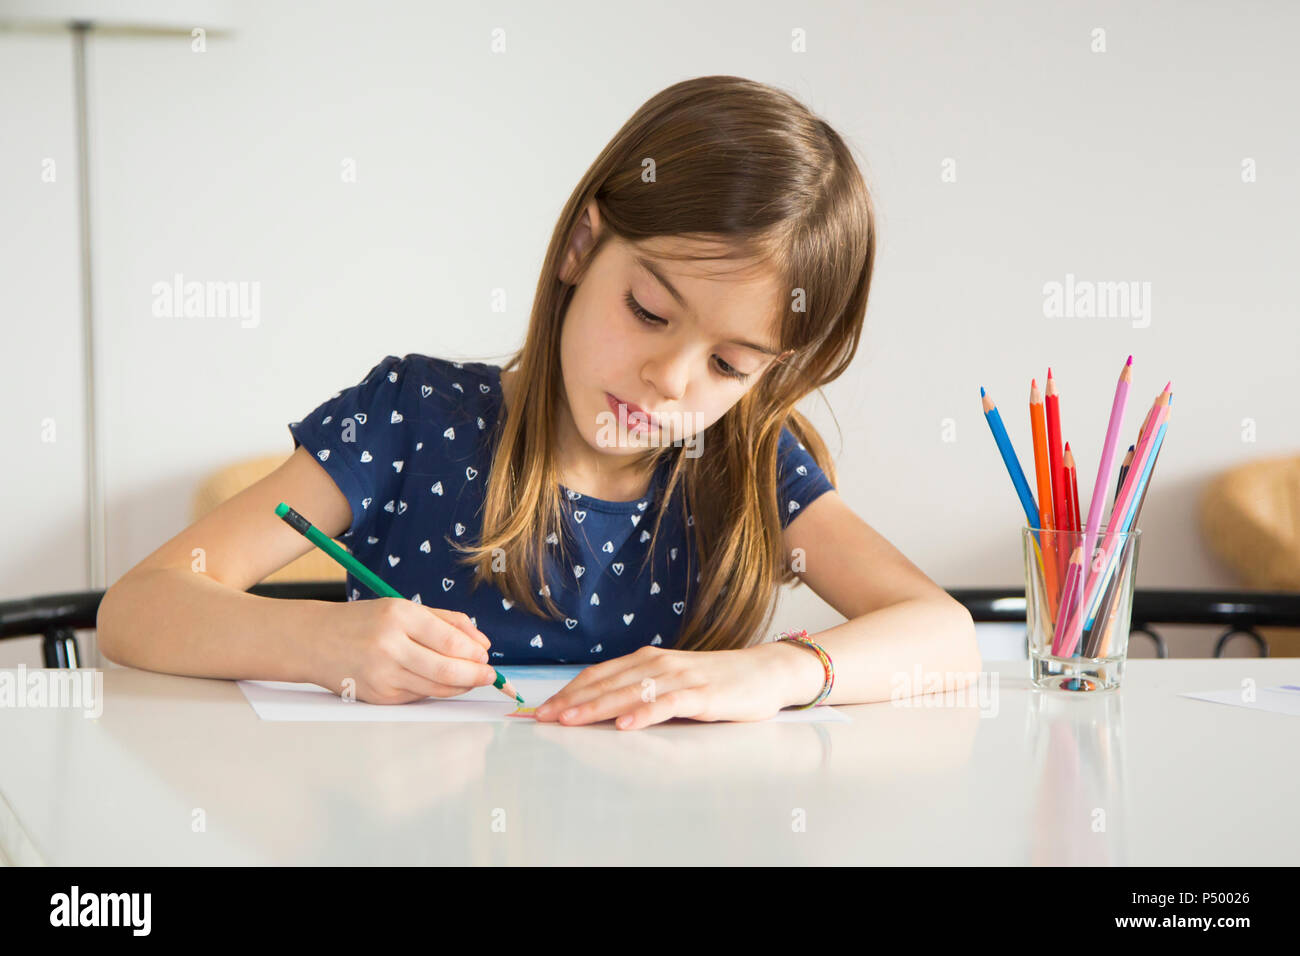 Portrait of little girl drawing - Stock Image